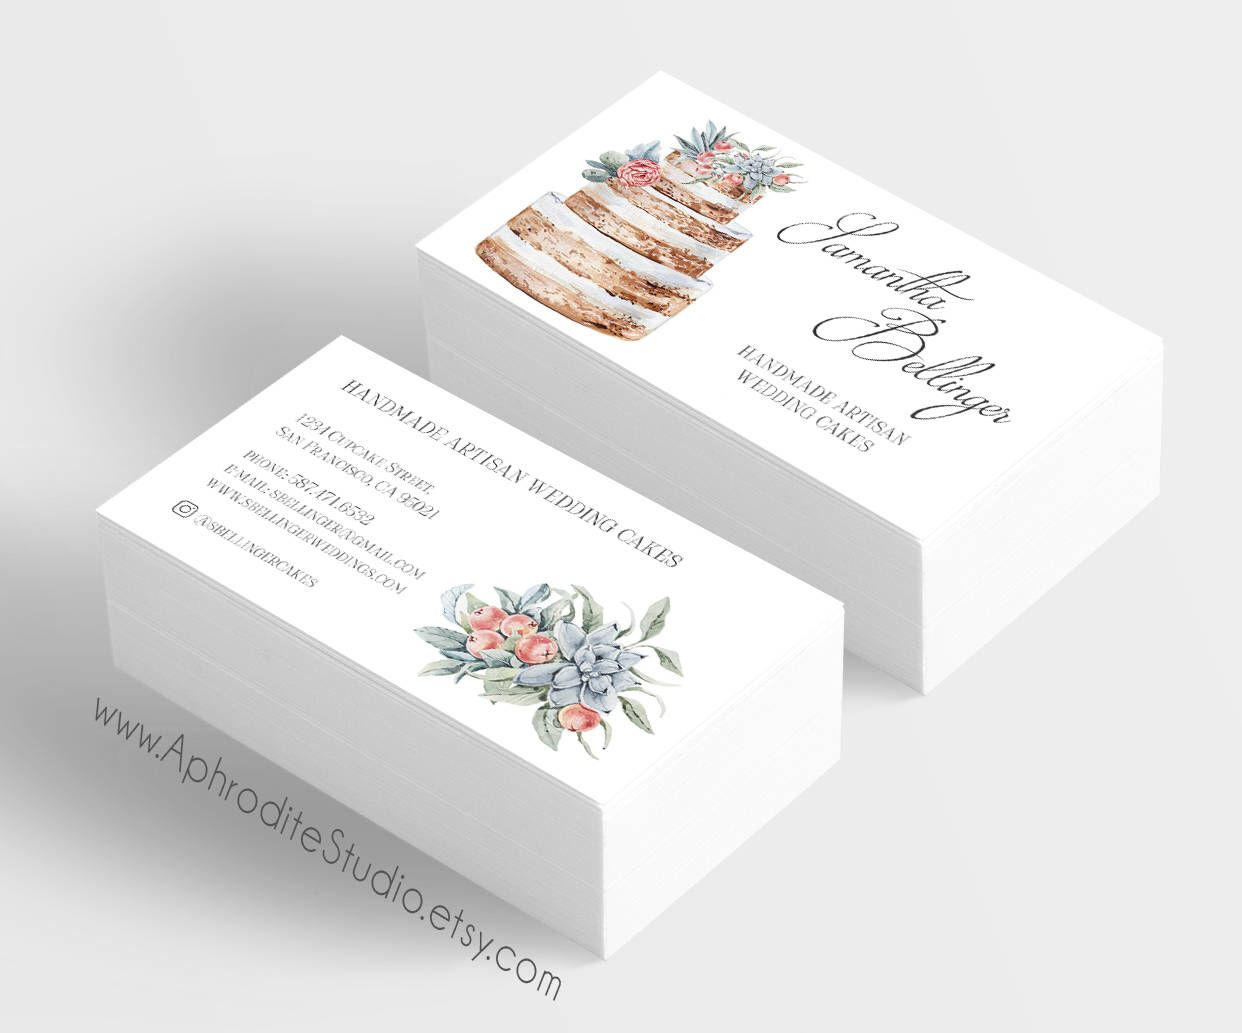 Bakery business cards cake business cards printable business bakery business cards cake business cards printable business cards naked cake business cards custom business cards baker business card reheart Images